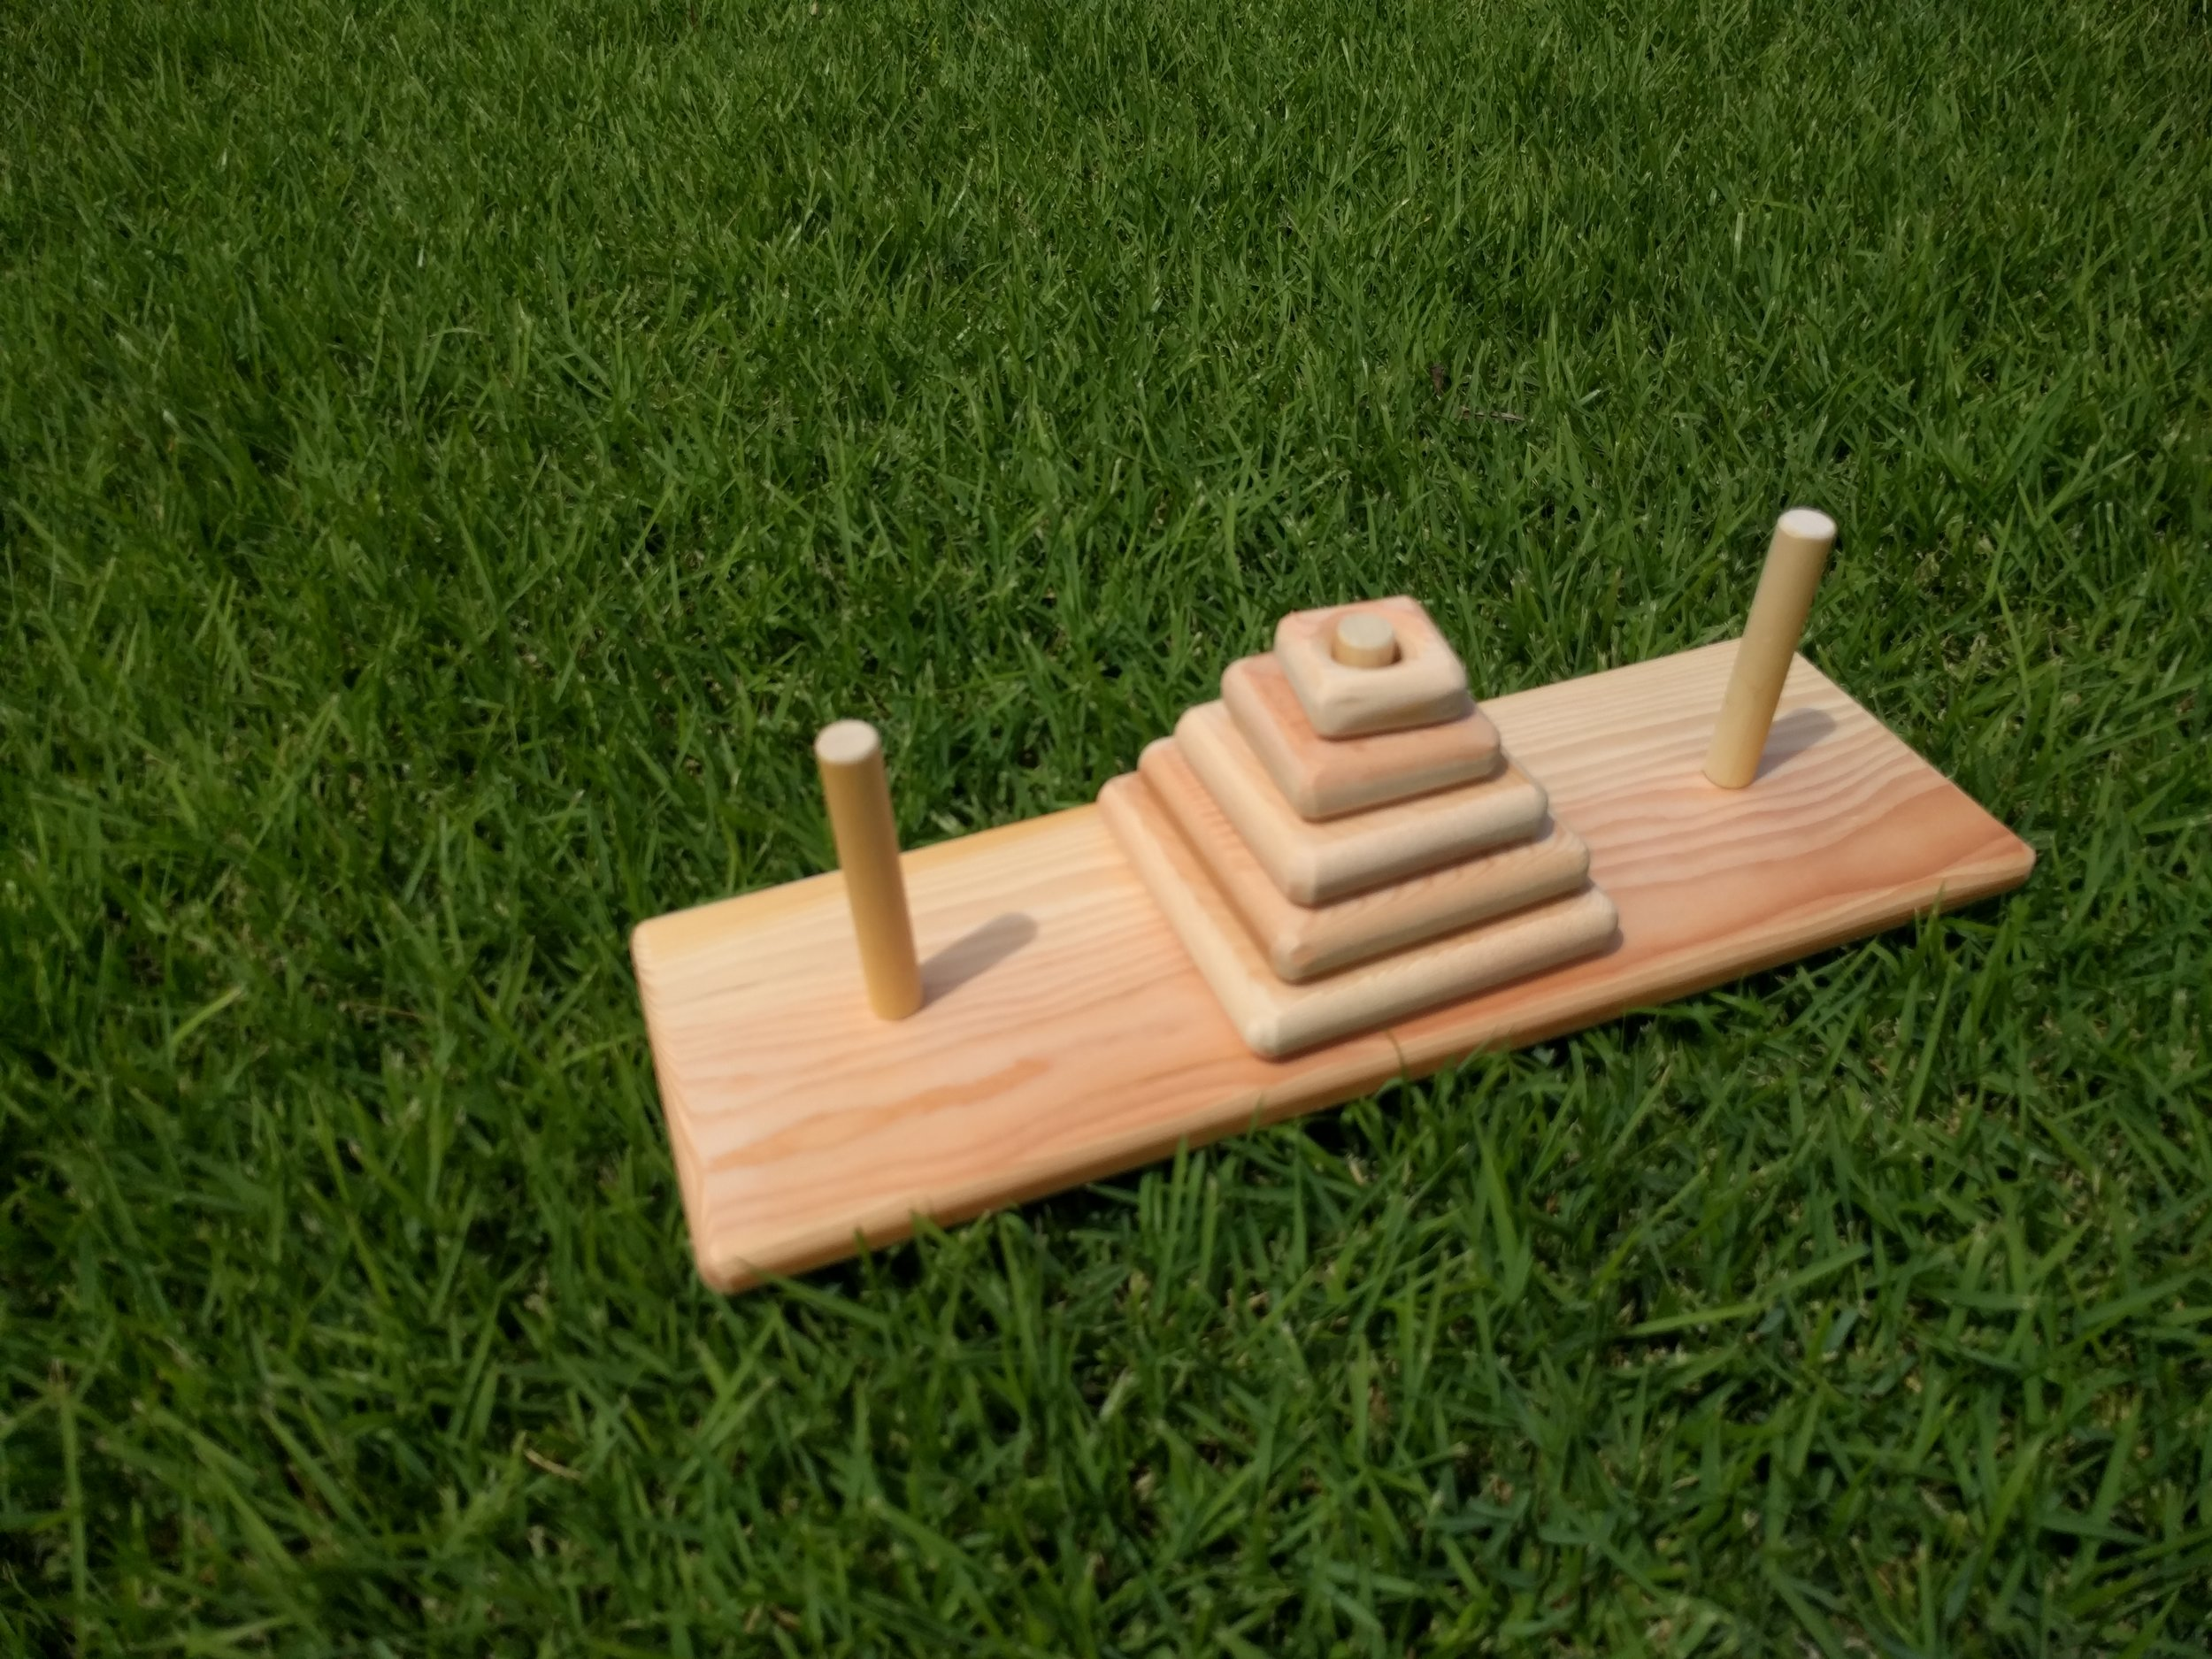 Tower Of Hanoi - This puzzle is simple. Start with all your pieces in the middle and move them to the side. One catch though you can only move one piece at a time and you can never put a bigger piece on a smaller piece. GO!